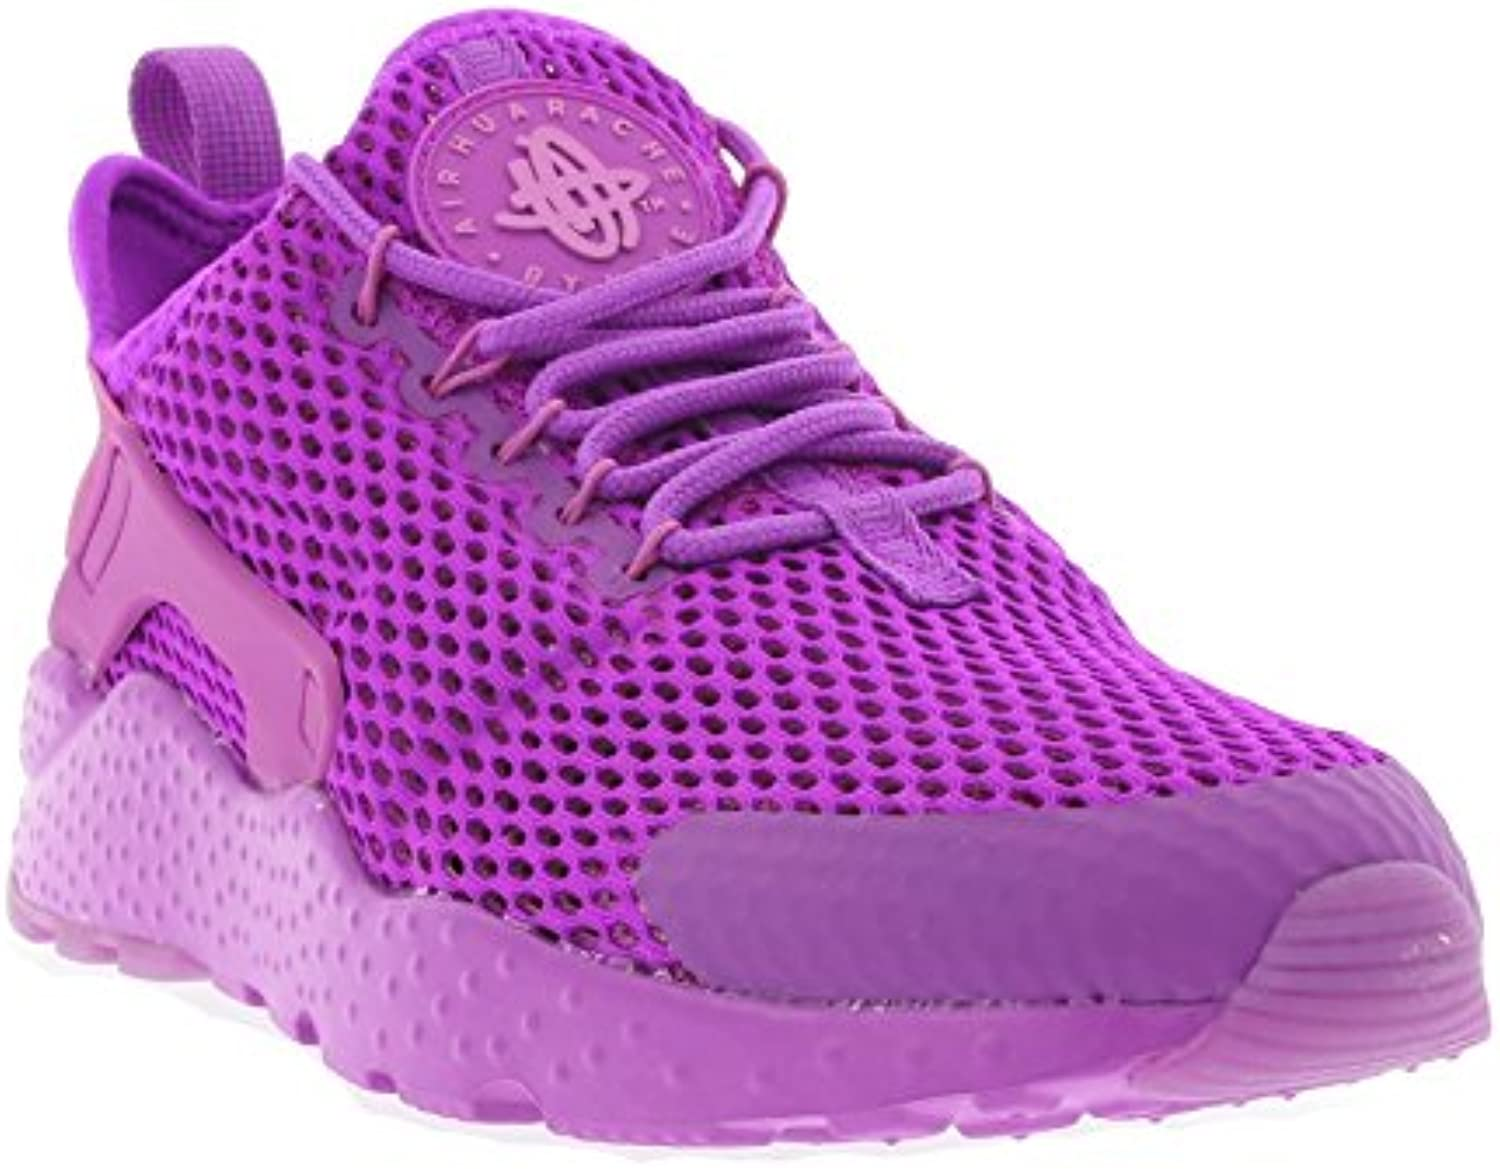 nike w air huarache cours ultra - br, les parent formateurs b000g3u1yg parent les & eacute; d14617